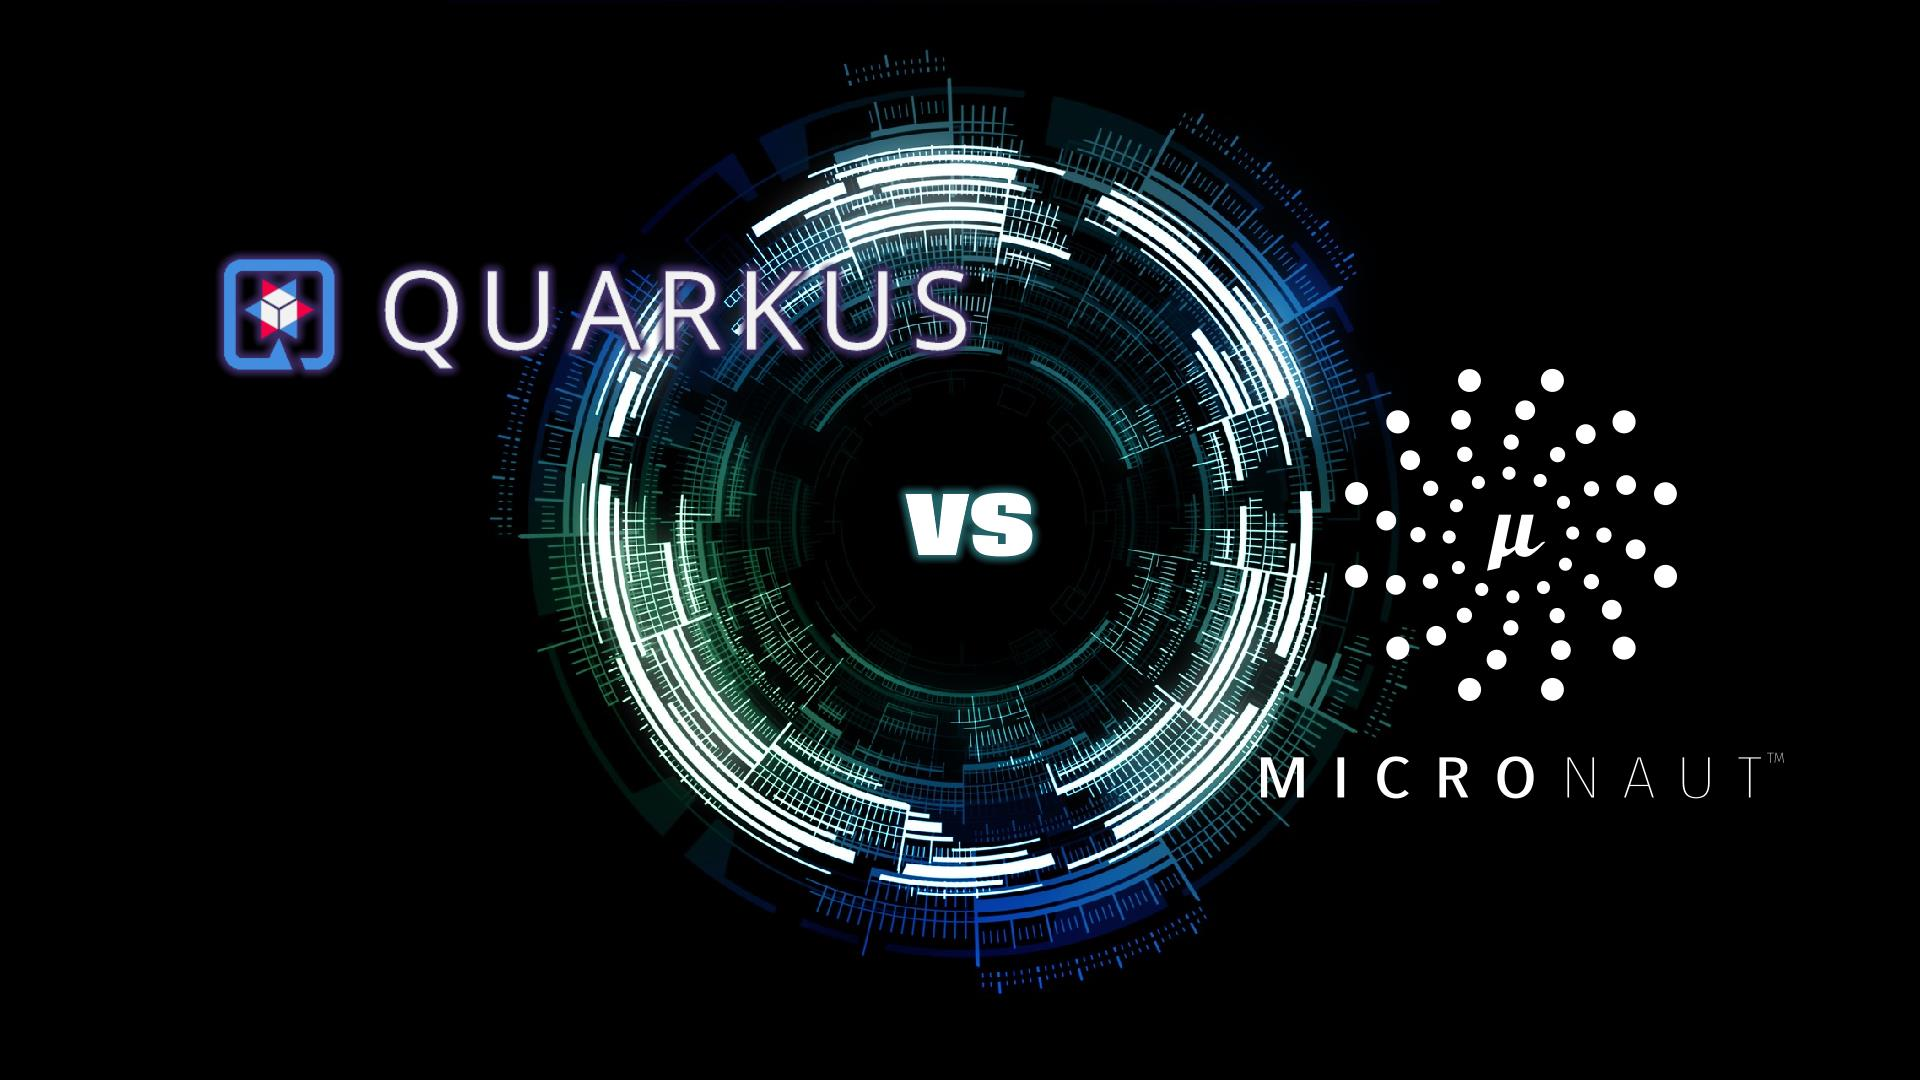 Quarkus vs Micronaut